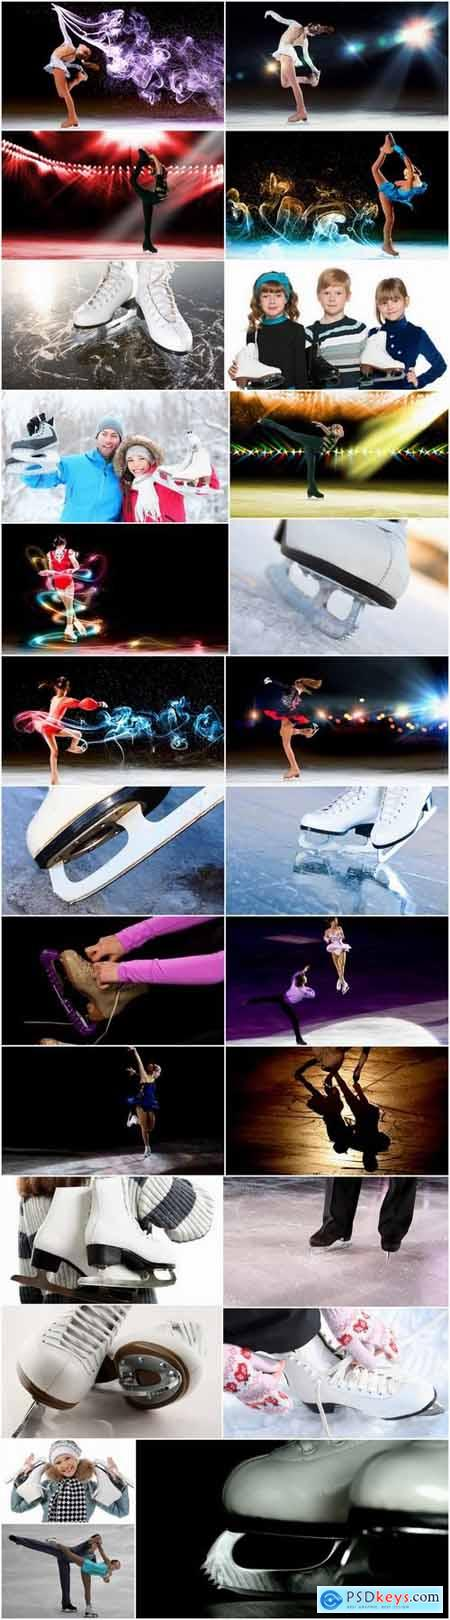 Figure skating 25 HQ Jpeg